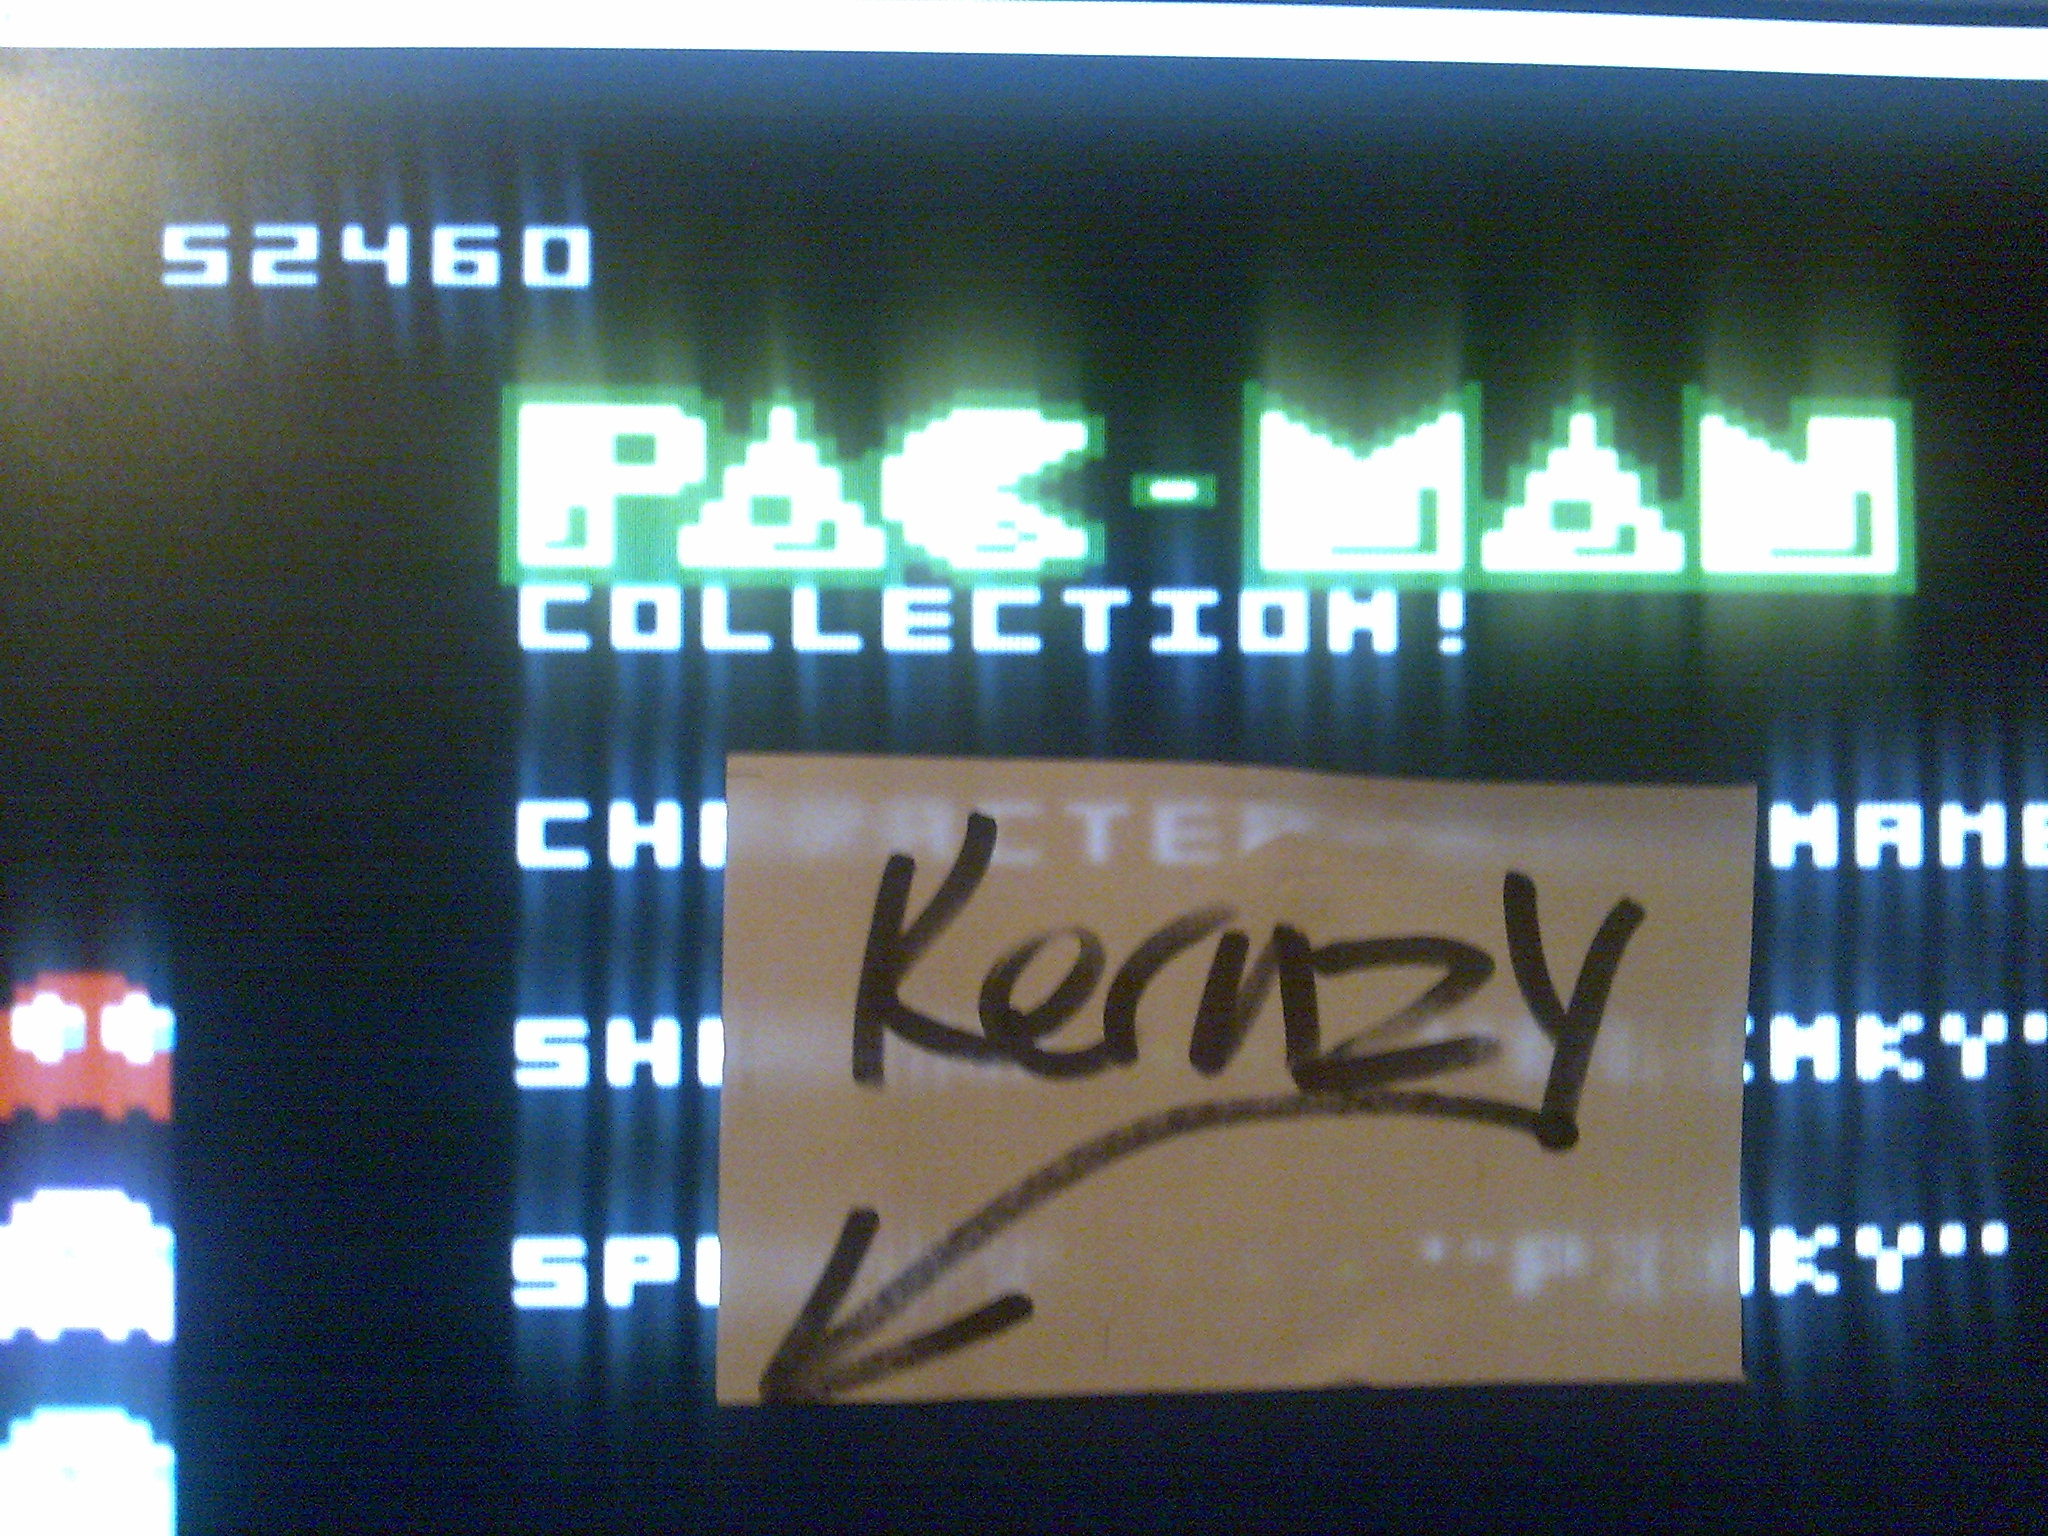 kernzy: Pac-Man Collection: Ultra Pac-Man [Cherries/Plus Off/Fast Off] (Atari 7800 Emulated) 52,460 points on 2014-10-19 01:25:30